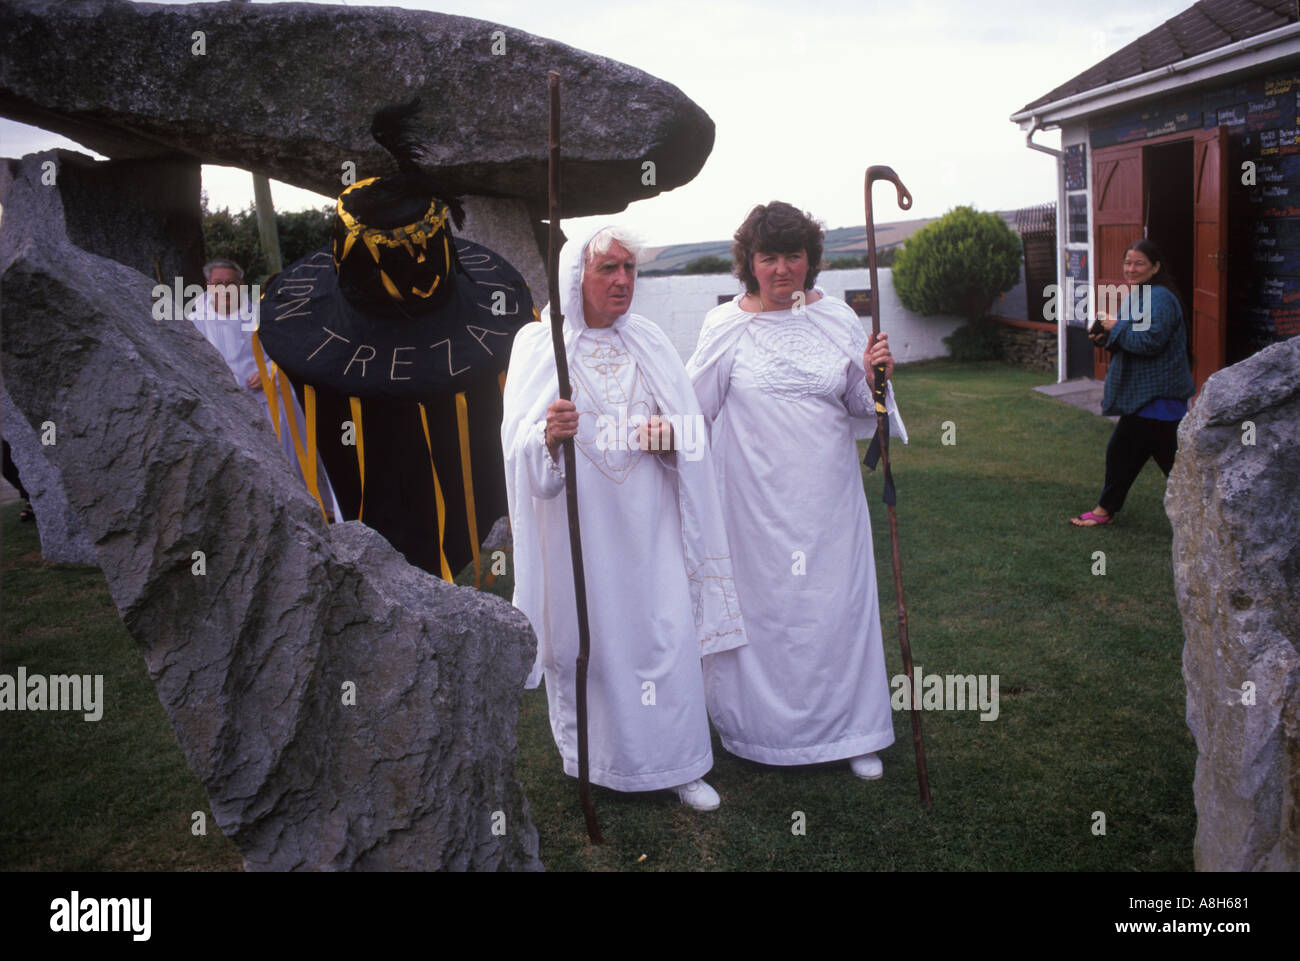 Ed Glyniss Prynn in megalithic garden Perform Druid ceremony total eclipse of sun 11th August 1999  Padstow Cornwall HOMER SYKES - Stock Image